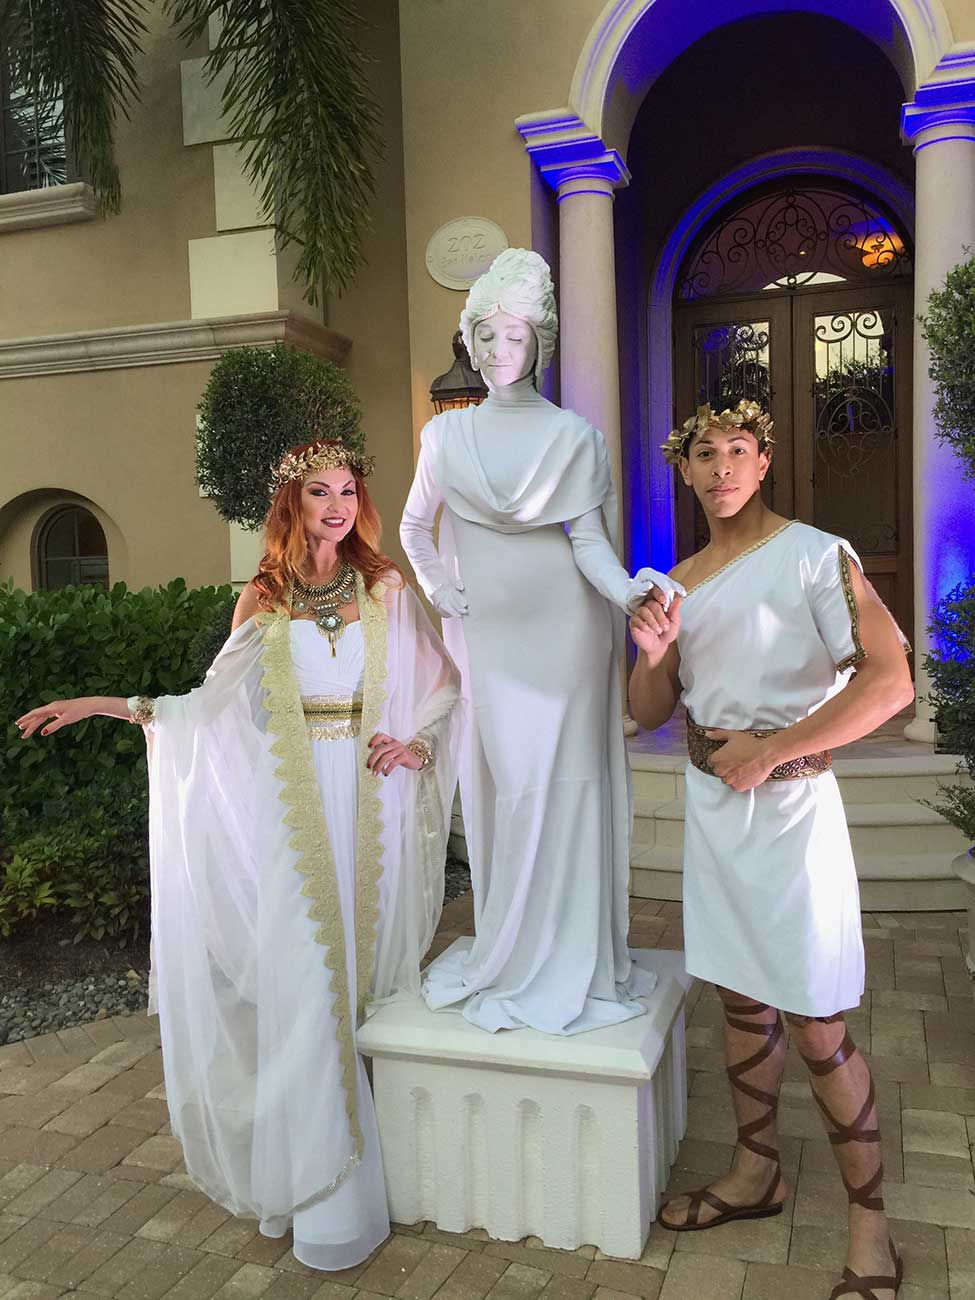 Greek statue and 2 actors dressed as Greek gods in front of home